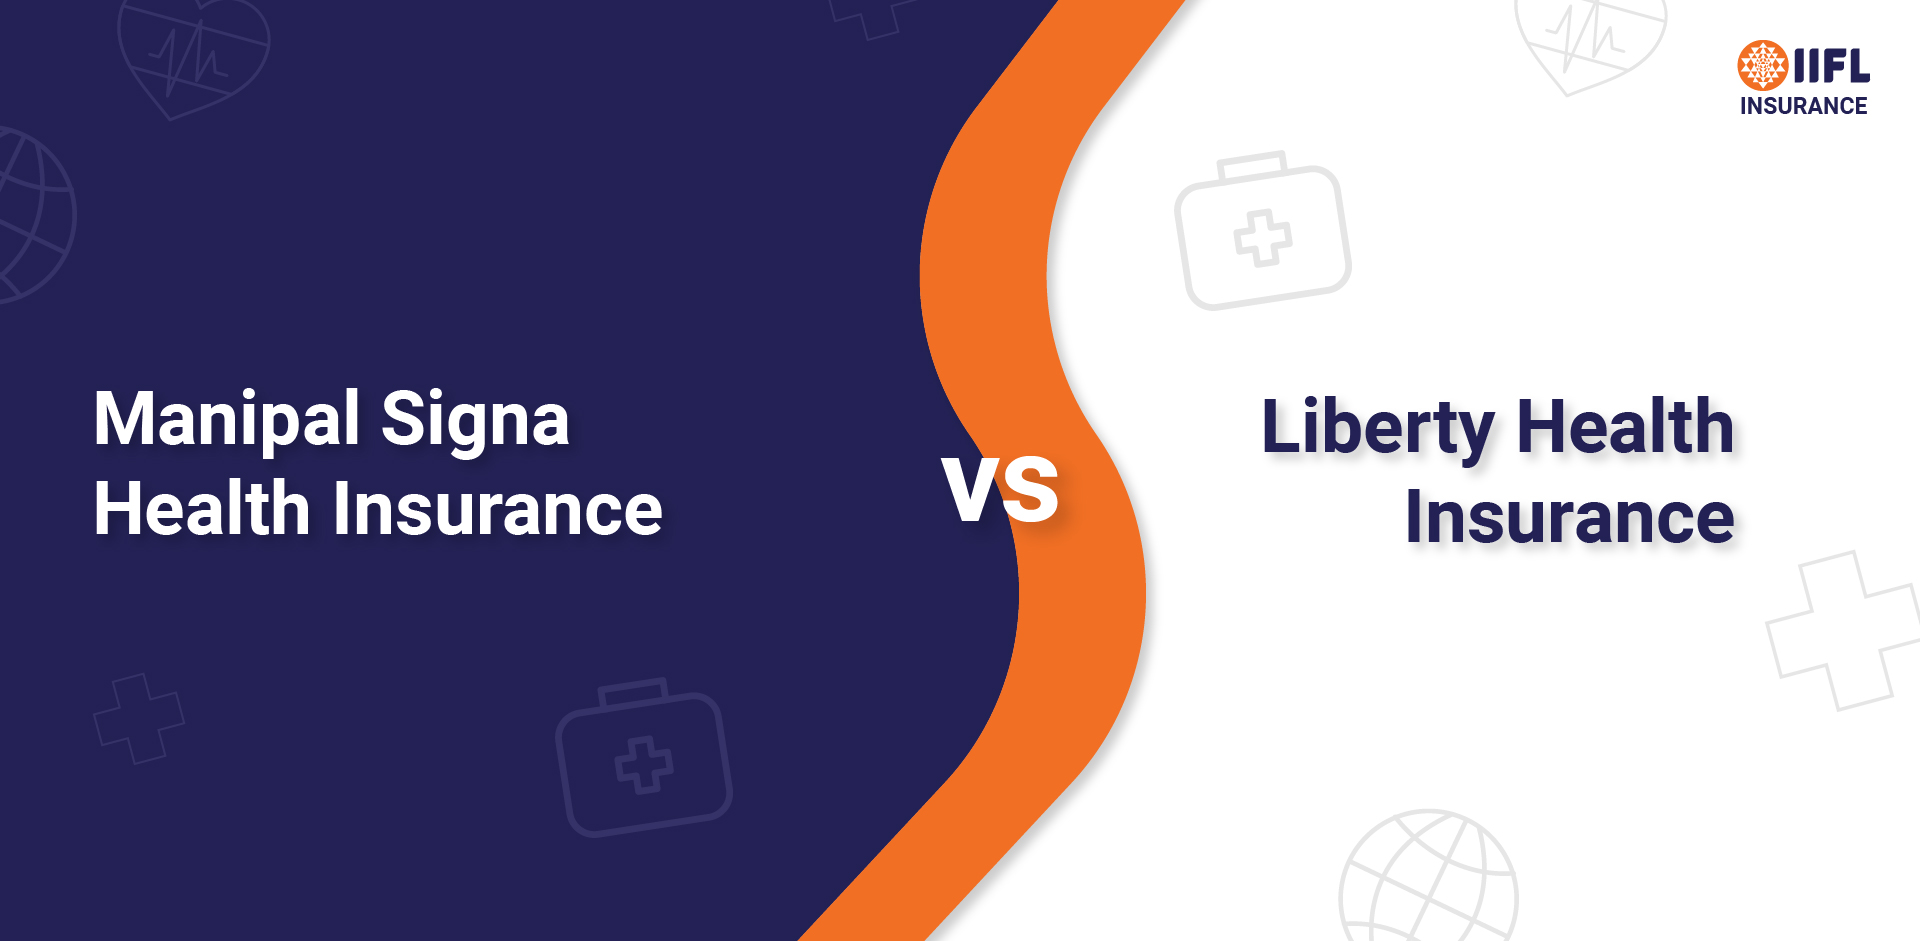 manipal signa vs liberty health insurance